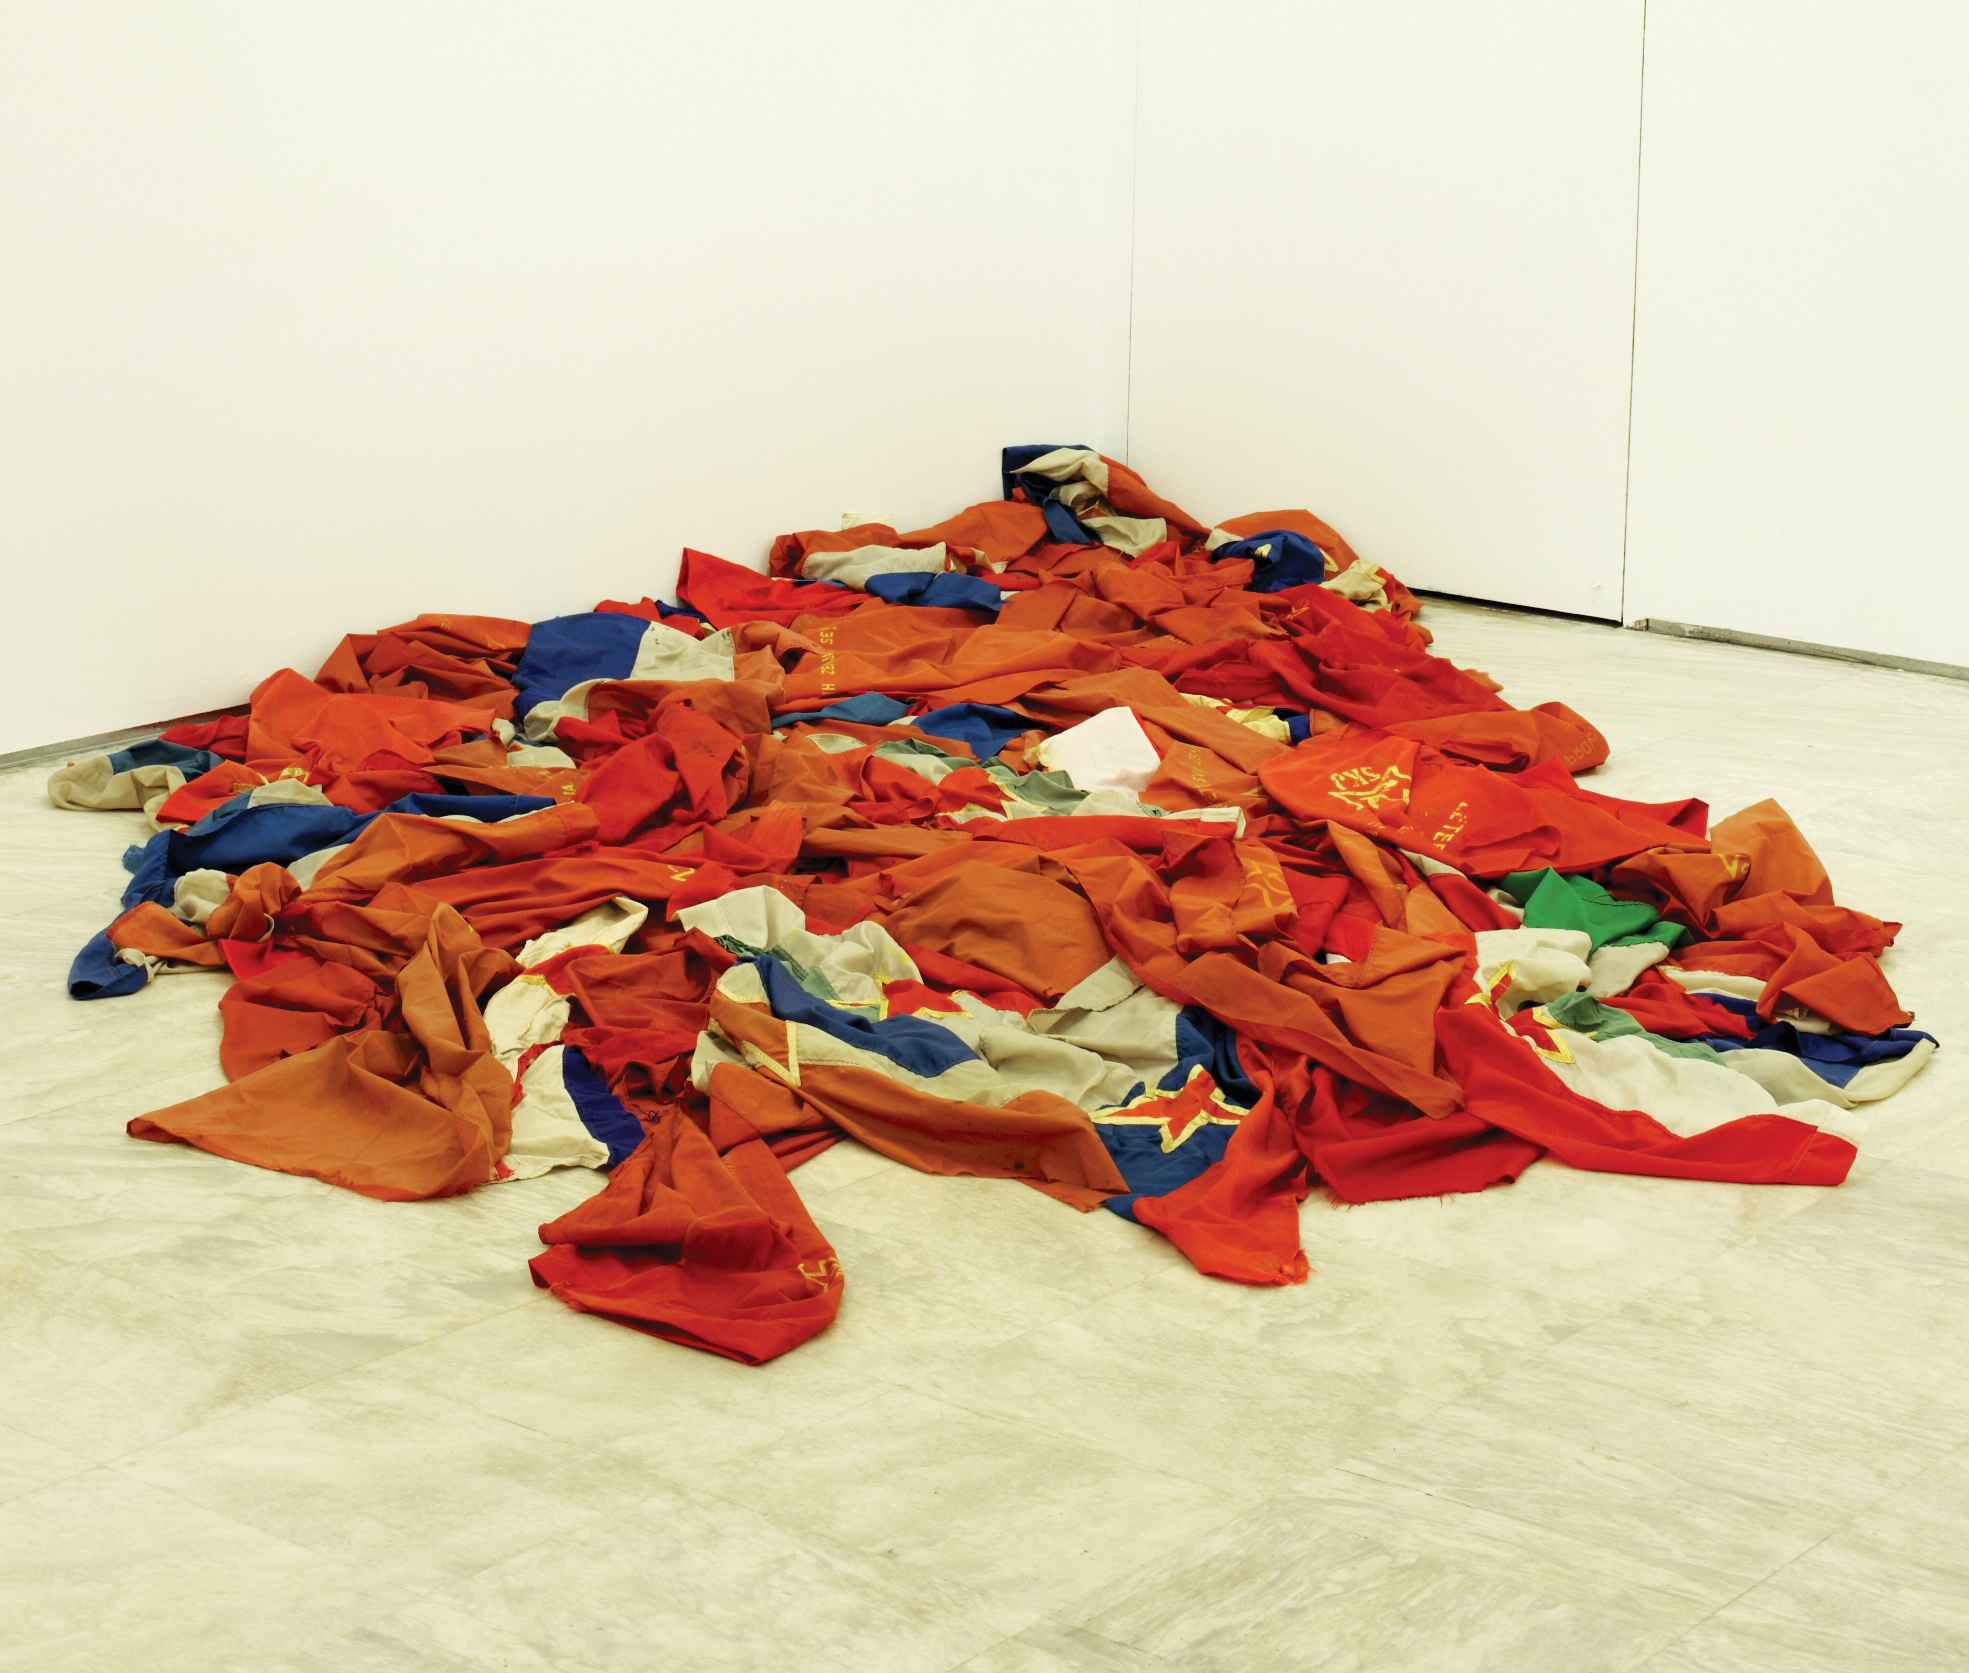 Ivan Grubanov, Dead Flags, (detail), 2011, installation, vintage flags. Photo: Vivianna Athanassopoulou.